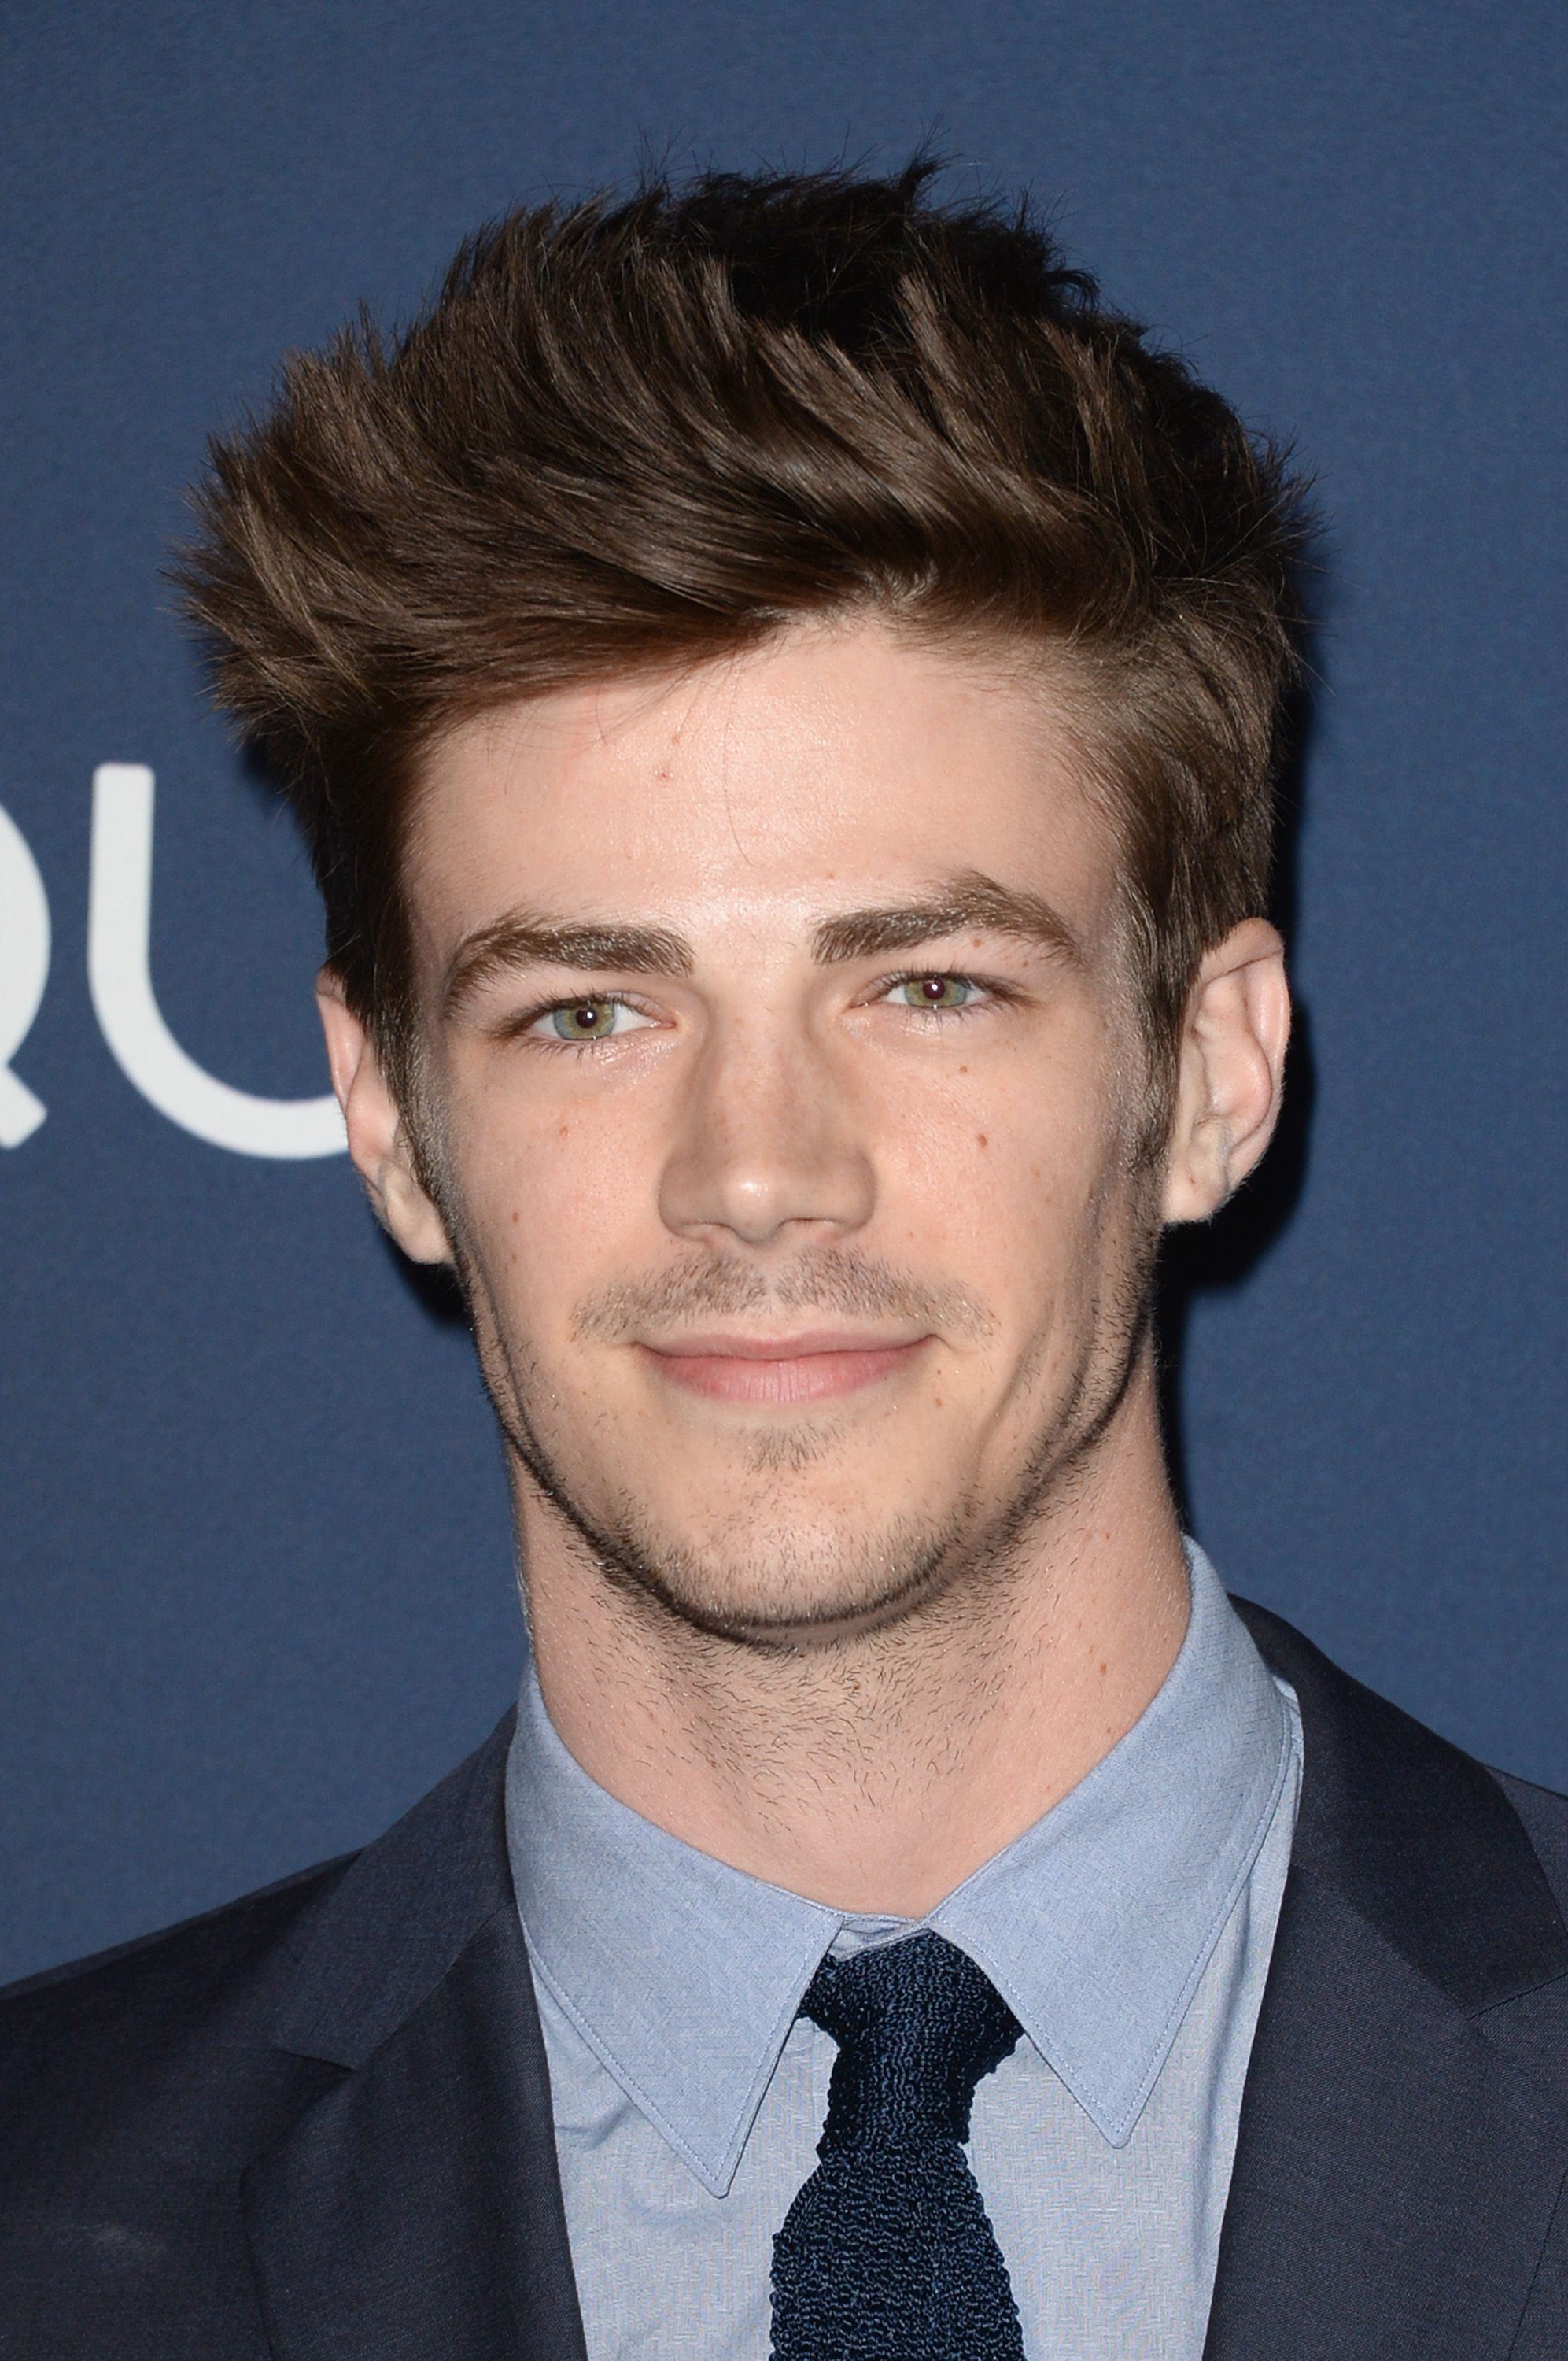 grant gustin инстаграмgrant gustin gif, grant gustin glee, grant gustin vk, grant gustin twitter, grant gustin tumblr, grant gustin песни, grant gustin singing, grant gustin insta, grant gustin height, grant gustin hq, grant gustin facebook, grant gustin gif hunt, grant gustin glad you came, grant gustin and danielle panabaker, grant gustin smooth criminal, grant gustin инстаграм, grant gustin wiki, grant gustin films, grant gustin running home перевод, grant gustin – running home to you lyrics